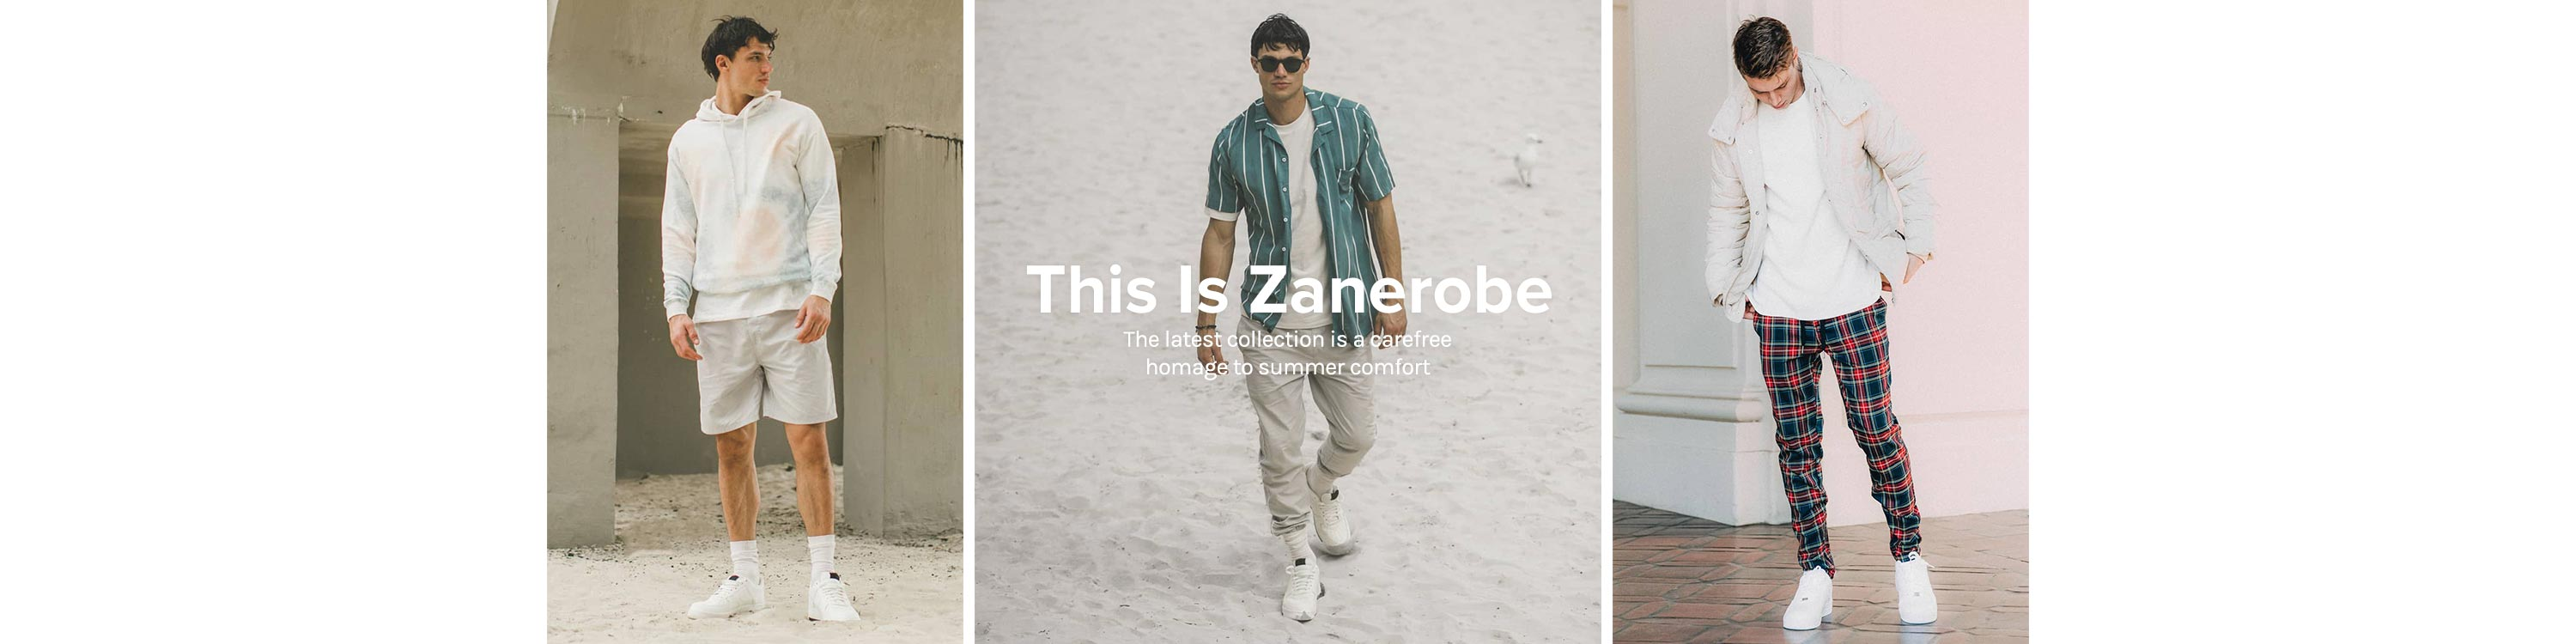 This Is Zanerobe. The latest collection is a carefree homage to summer comfort